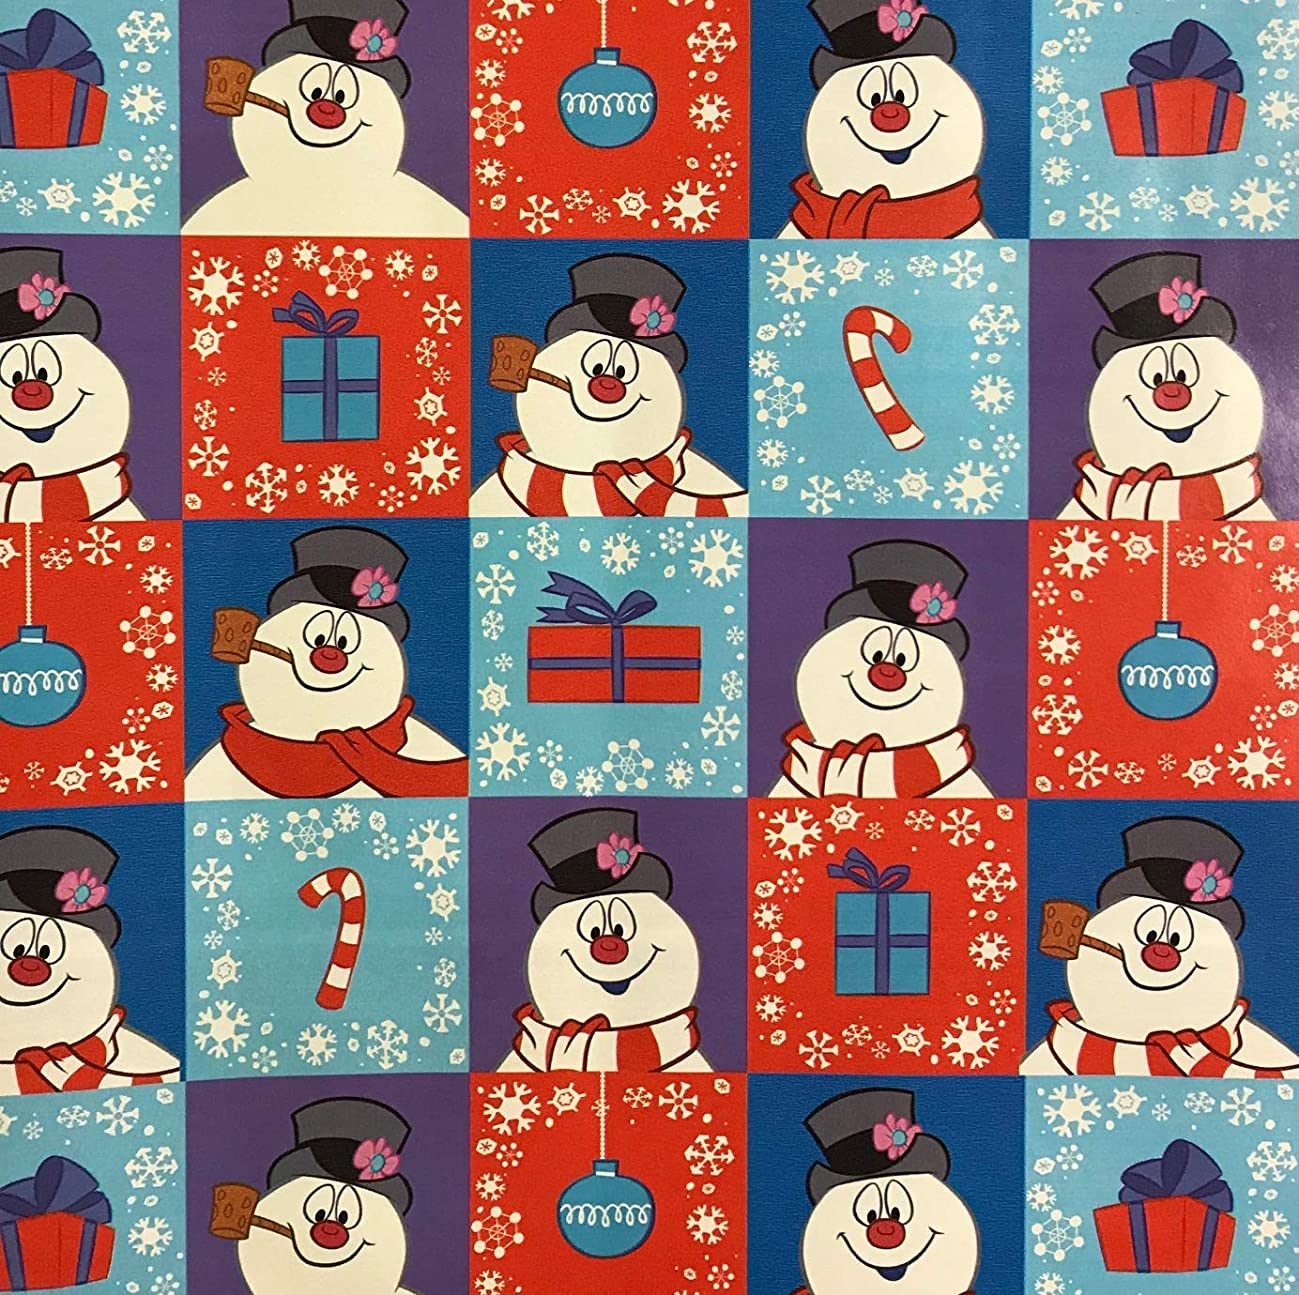 Frosty The Snowman Christmas Gift Wrap 60 Square Feet Roll